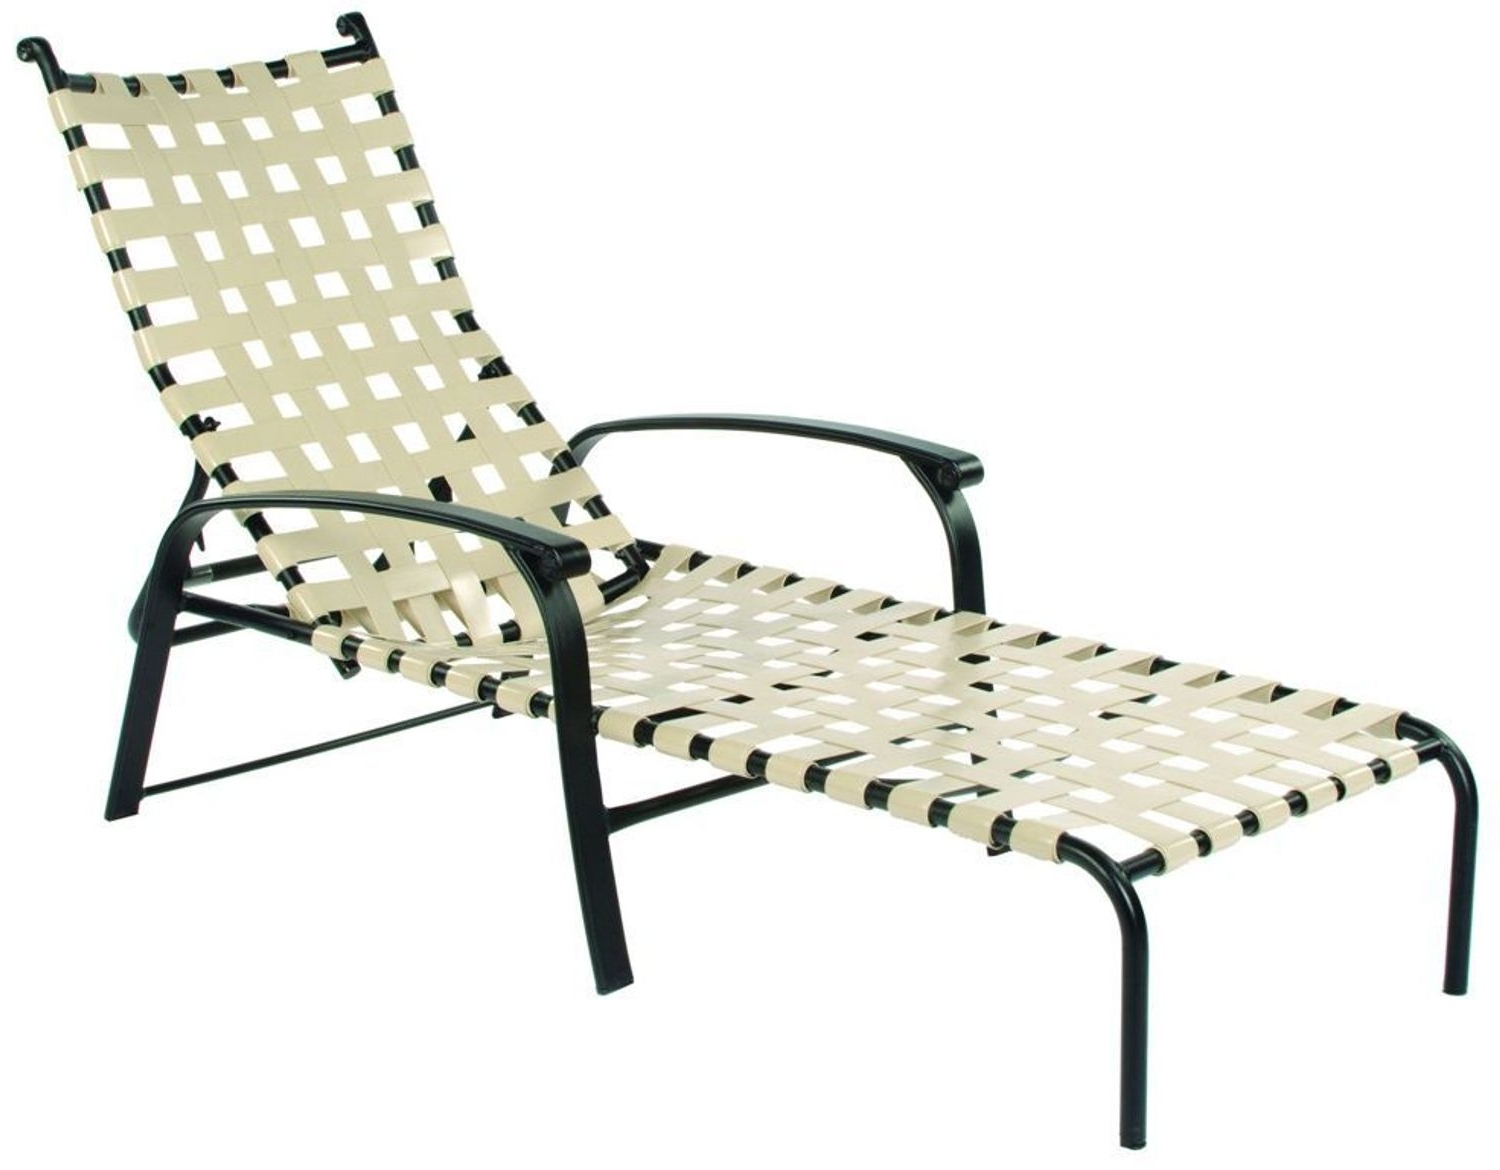 Home Outdoor Decoration With Regard To Commercial Grade Outdoor Chaise Lounge Chairs (View 8 of 15)